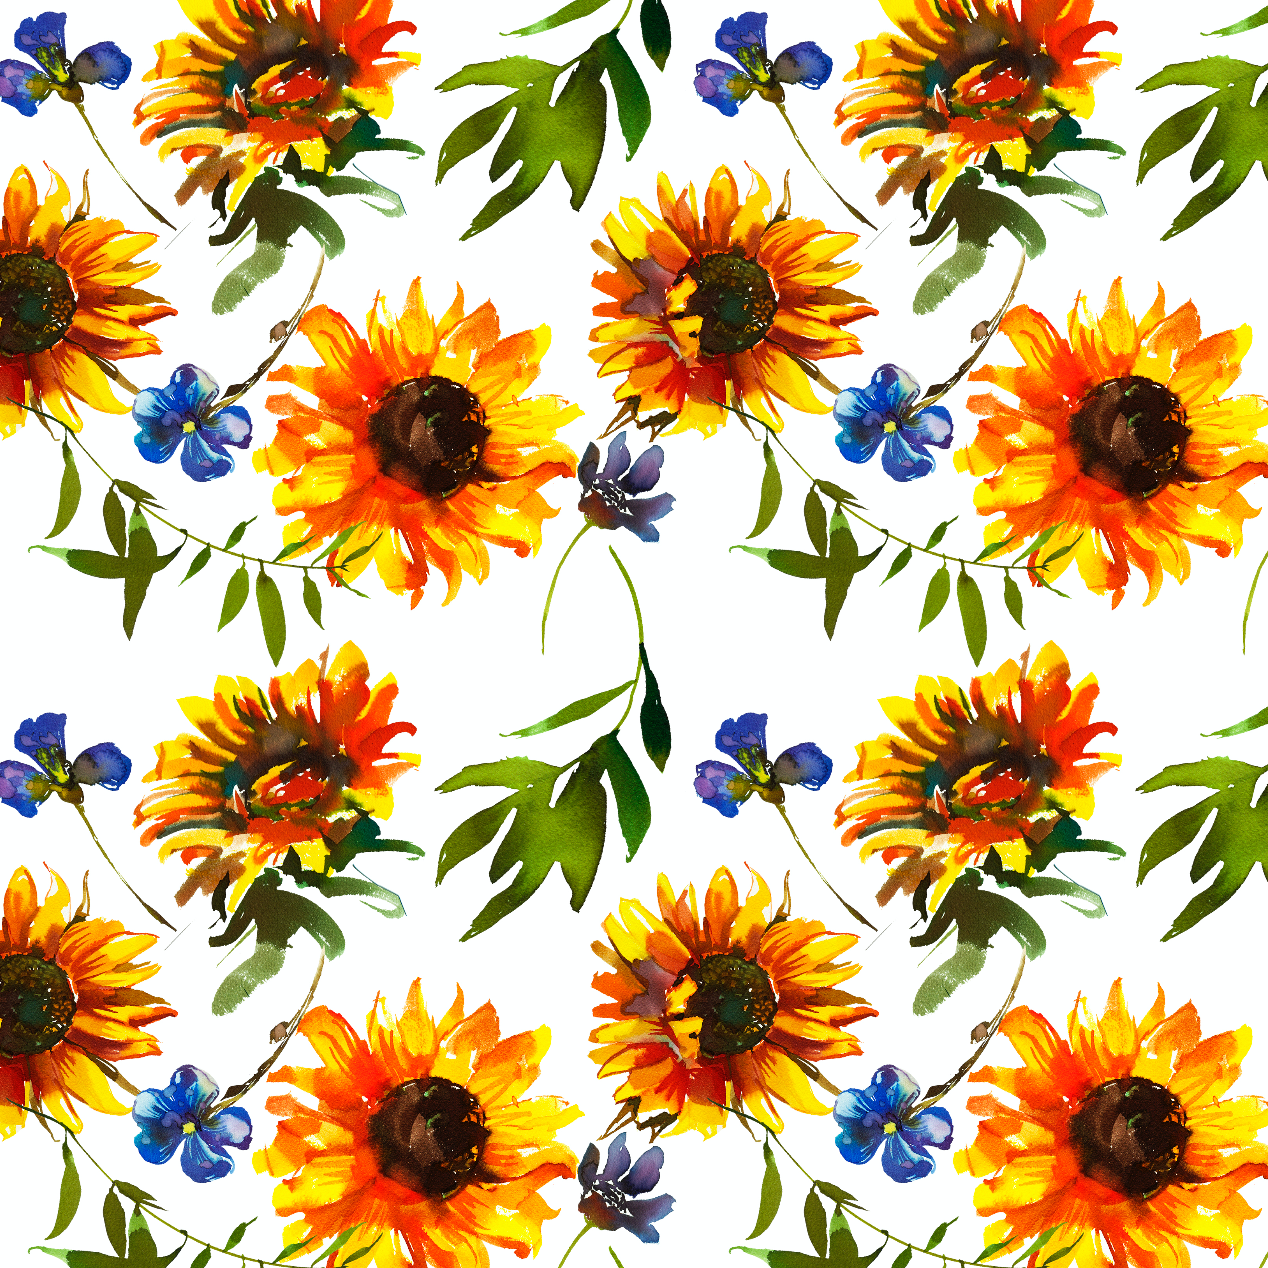 PRE ORDER - Clucker Sunflower White - Digital Fabric Print